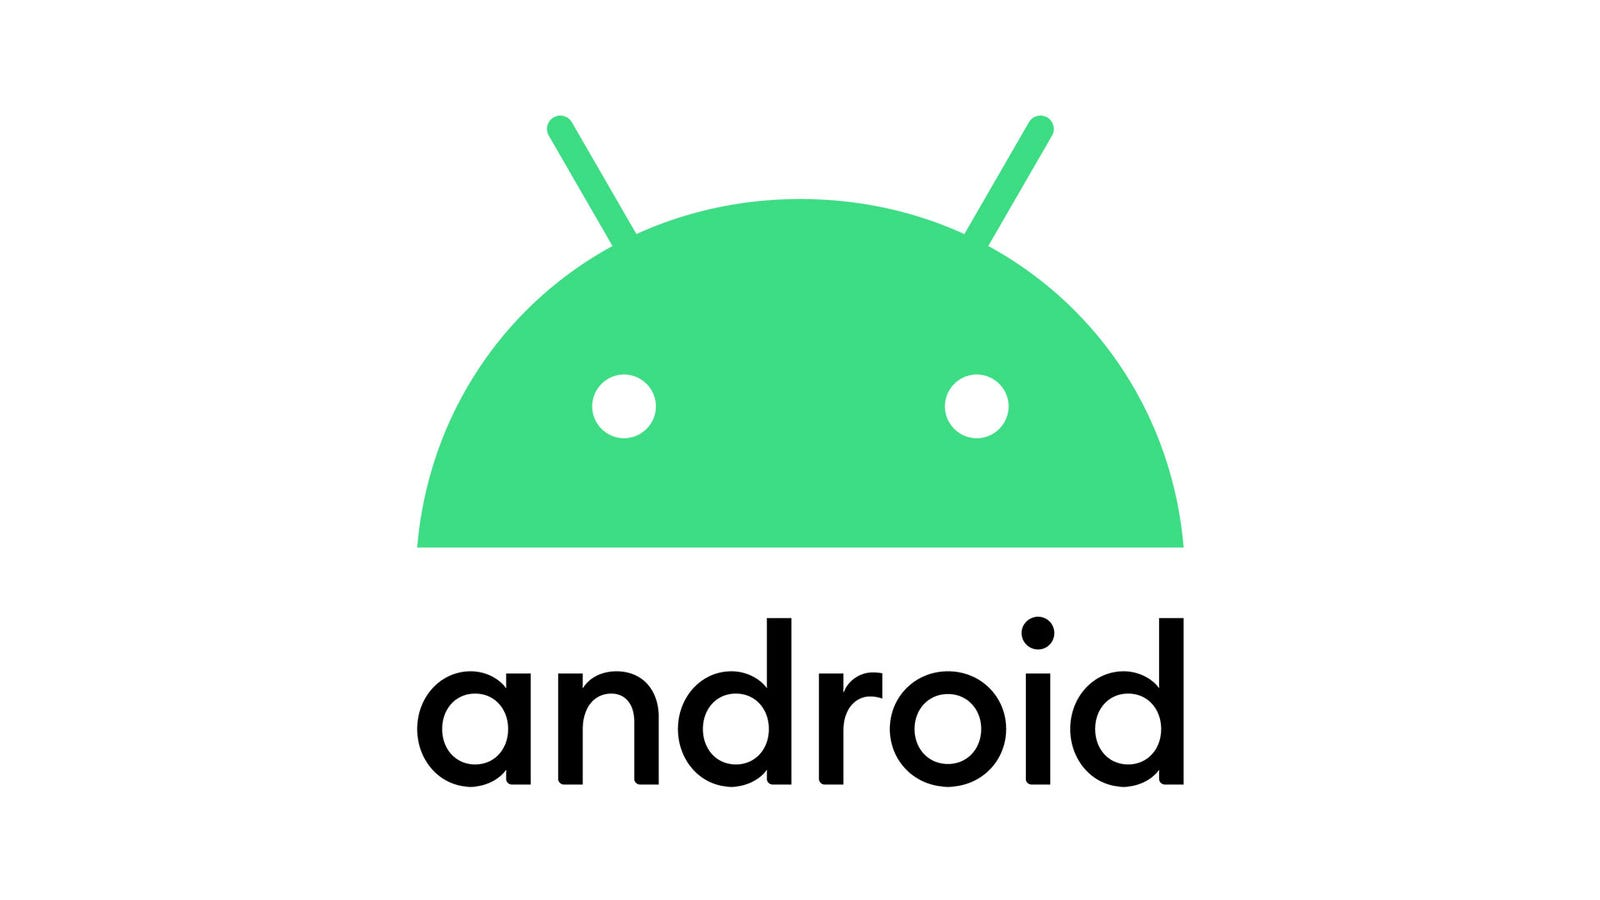 Google's Dessert Theme Meets Bittersweet End as Android Q Officially Becomes Android 10